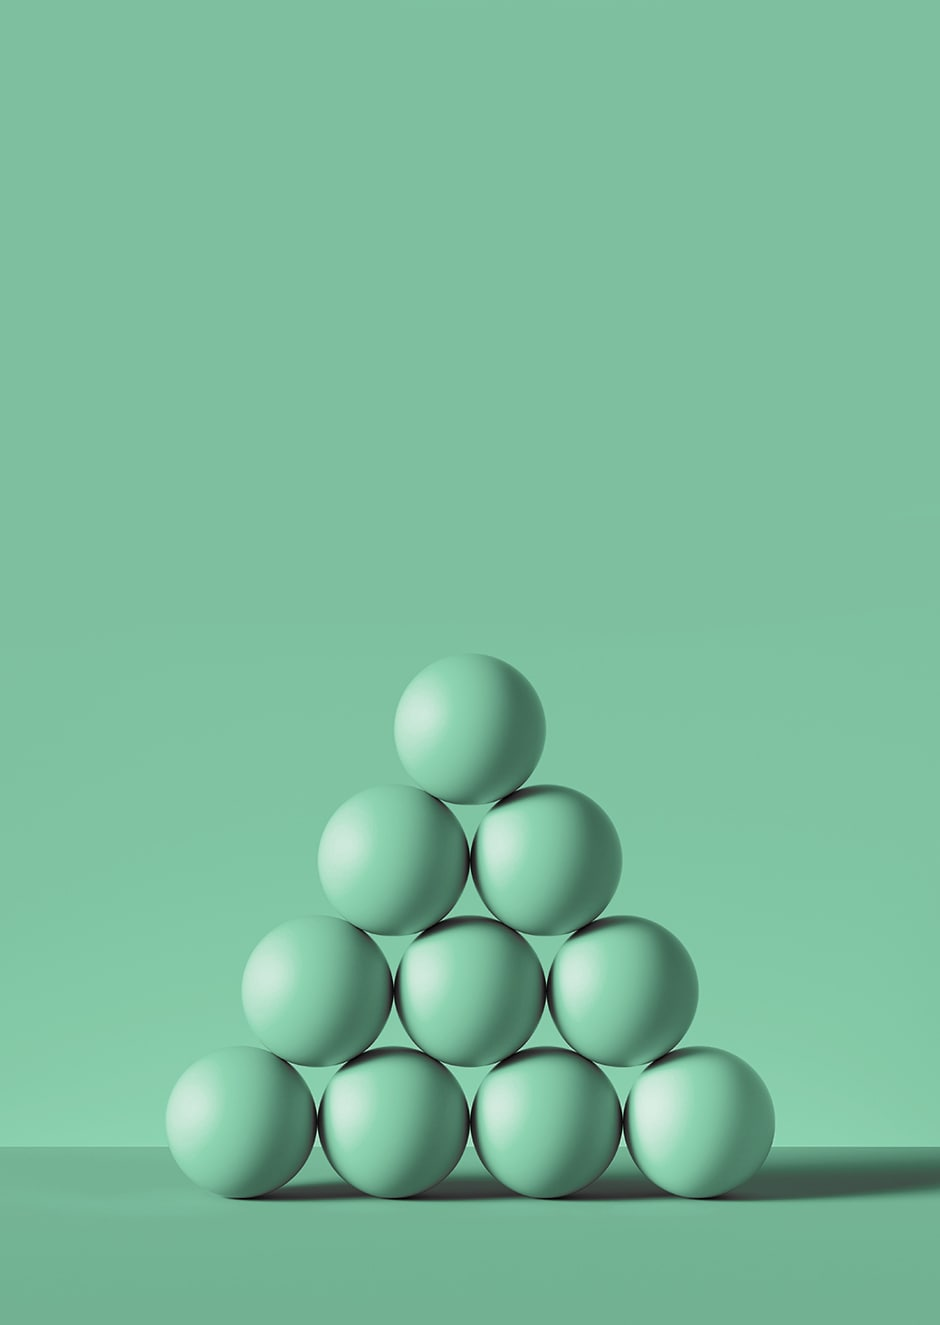 10 green spheres stacked in a pyramid with green background